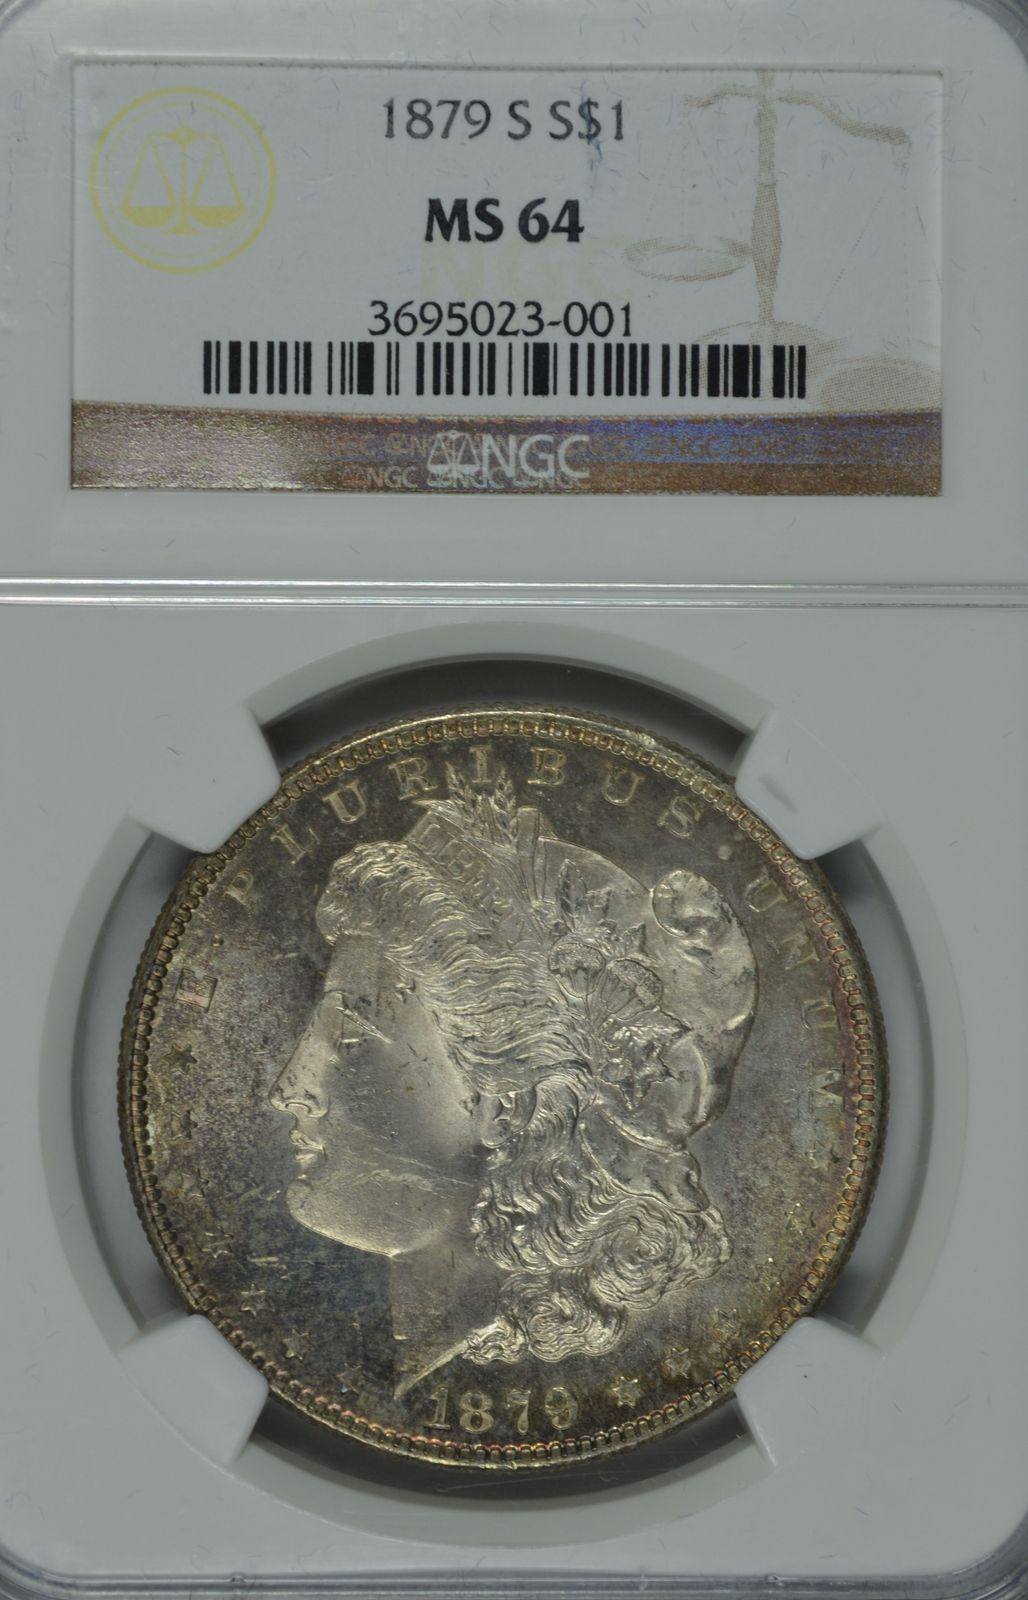 Primary image for 1879 S Morgan silver dollar NGC MS 64